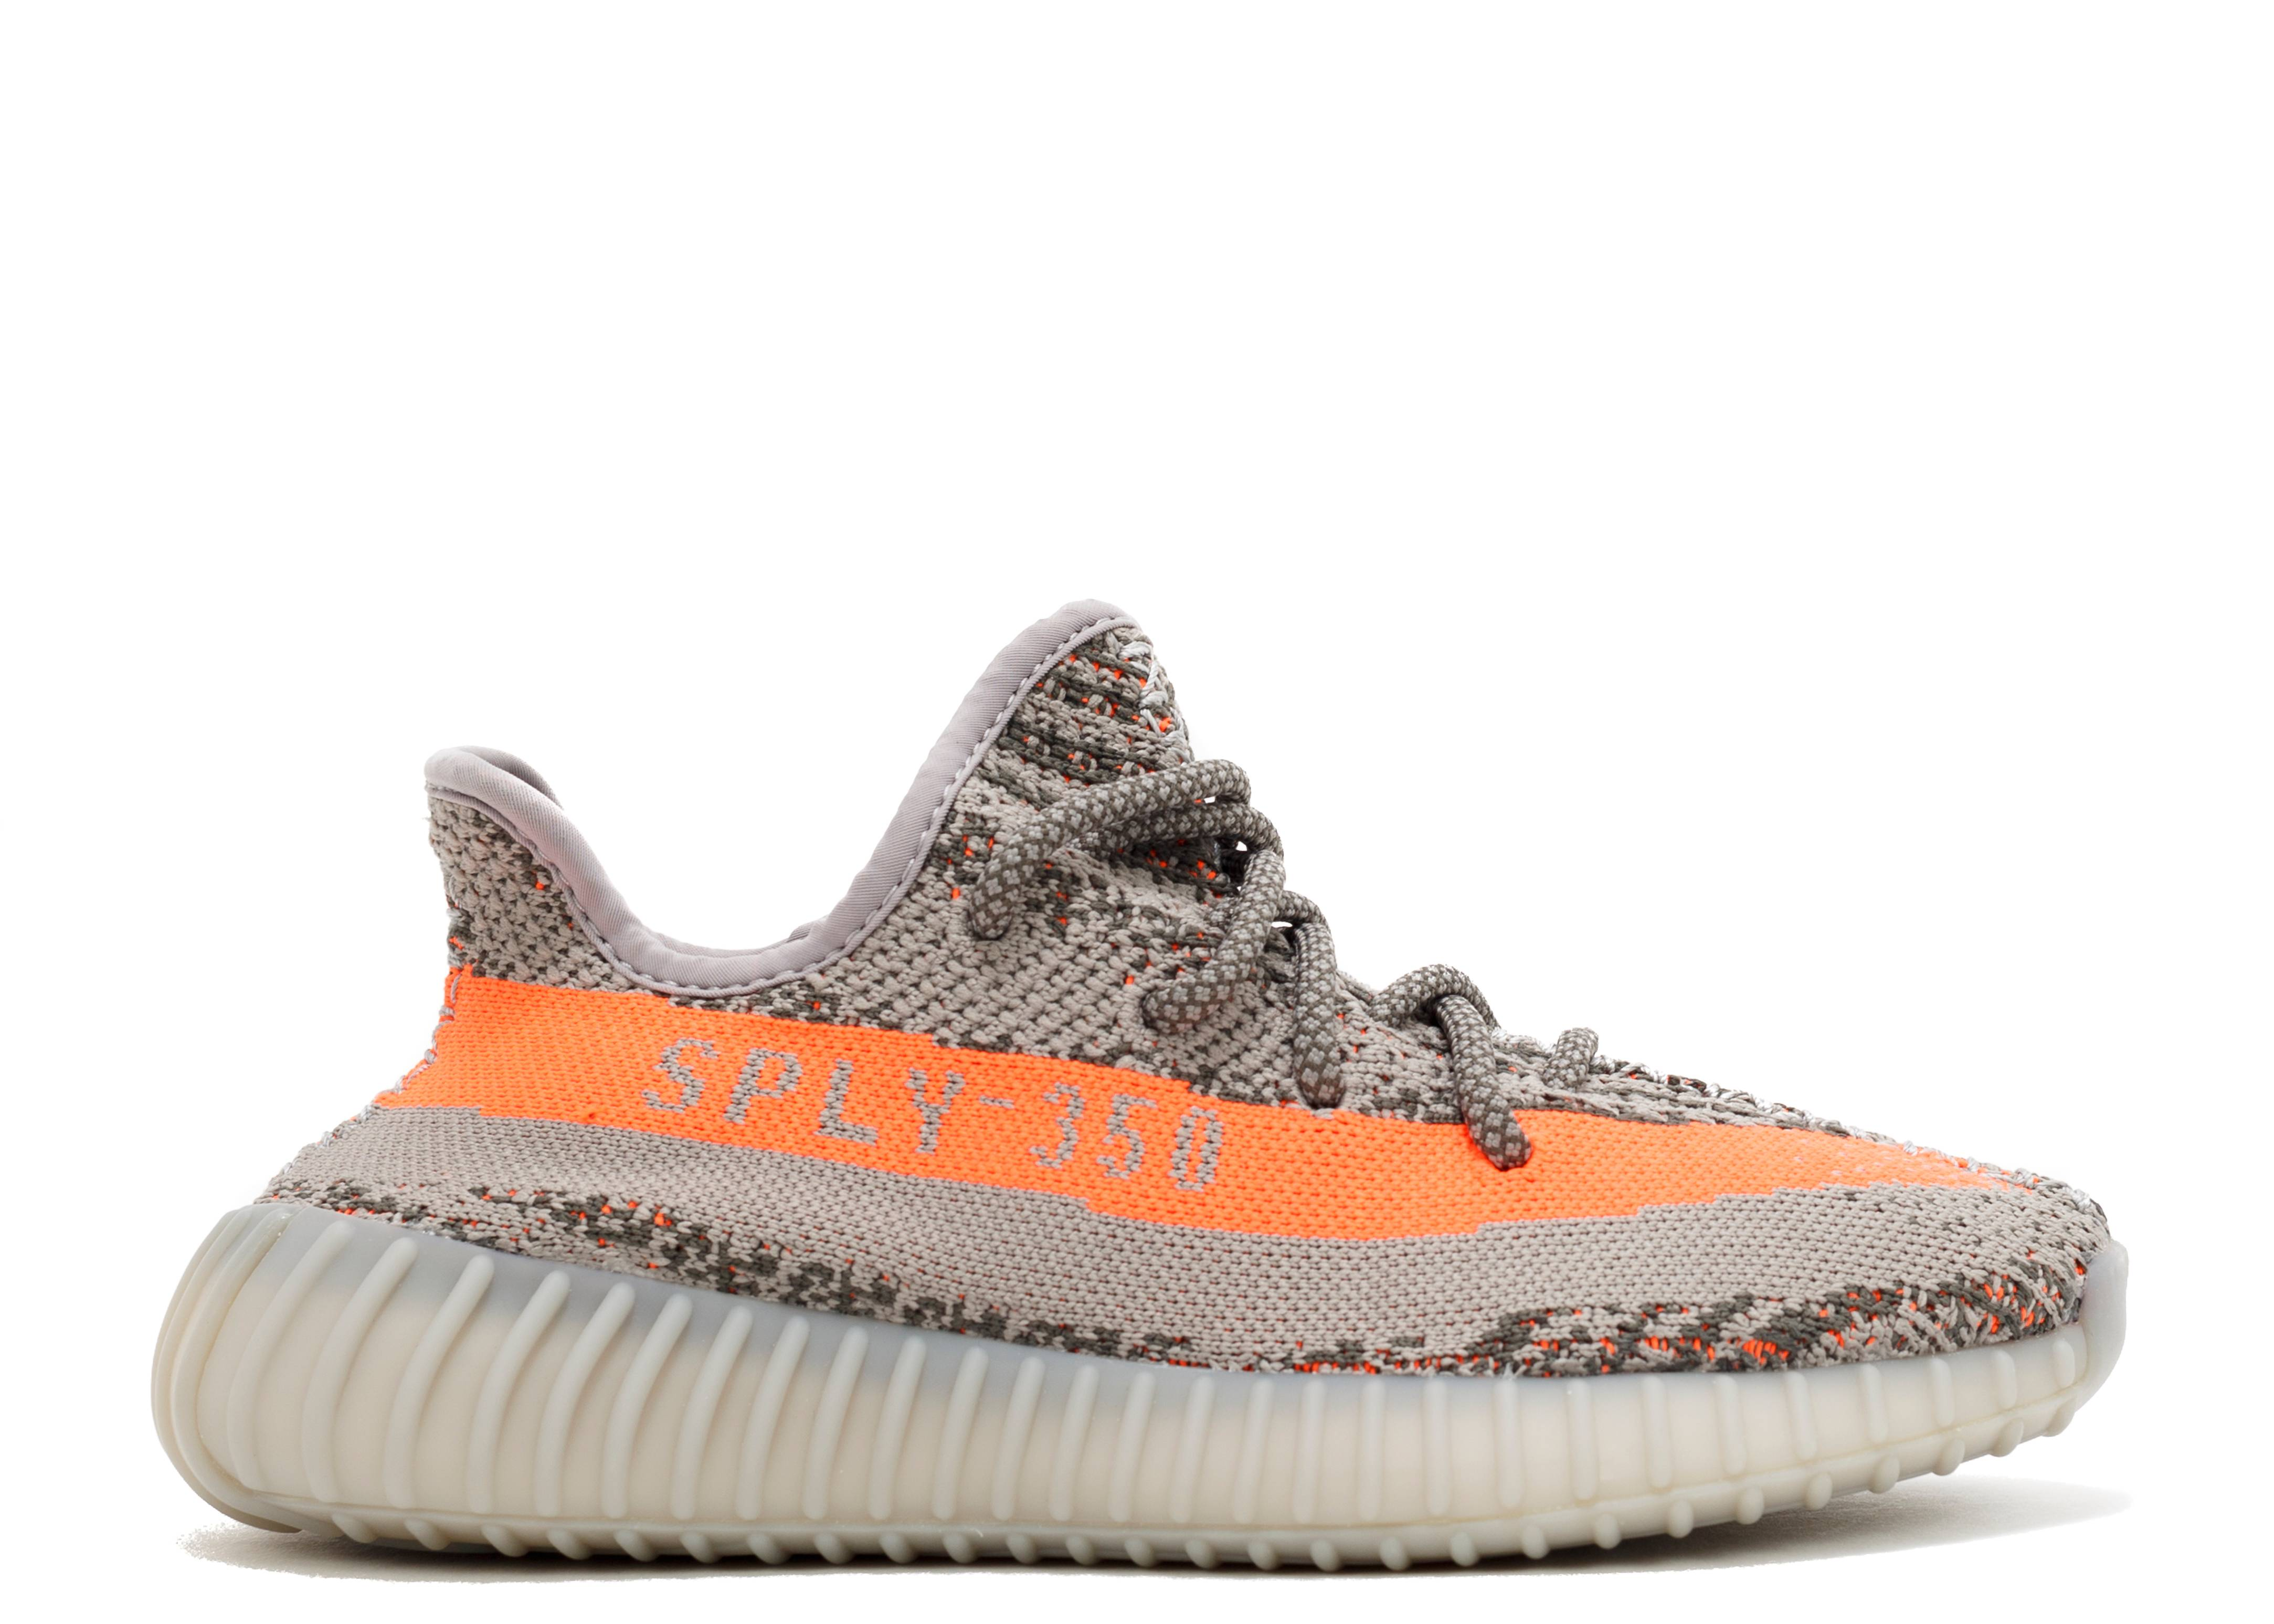 NEW SELL WHOLESALE!!!Adidas Yeezy Boost 350 V2 infrared will be